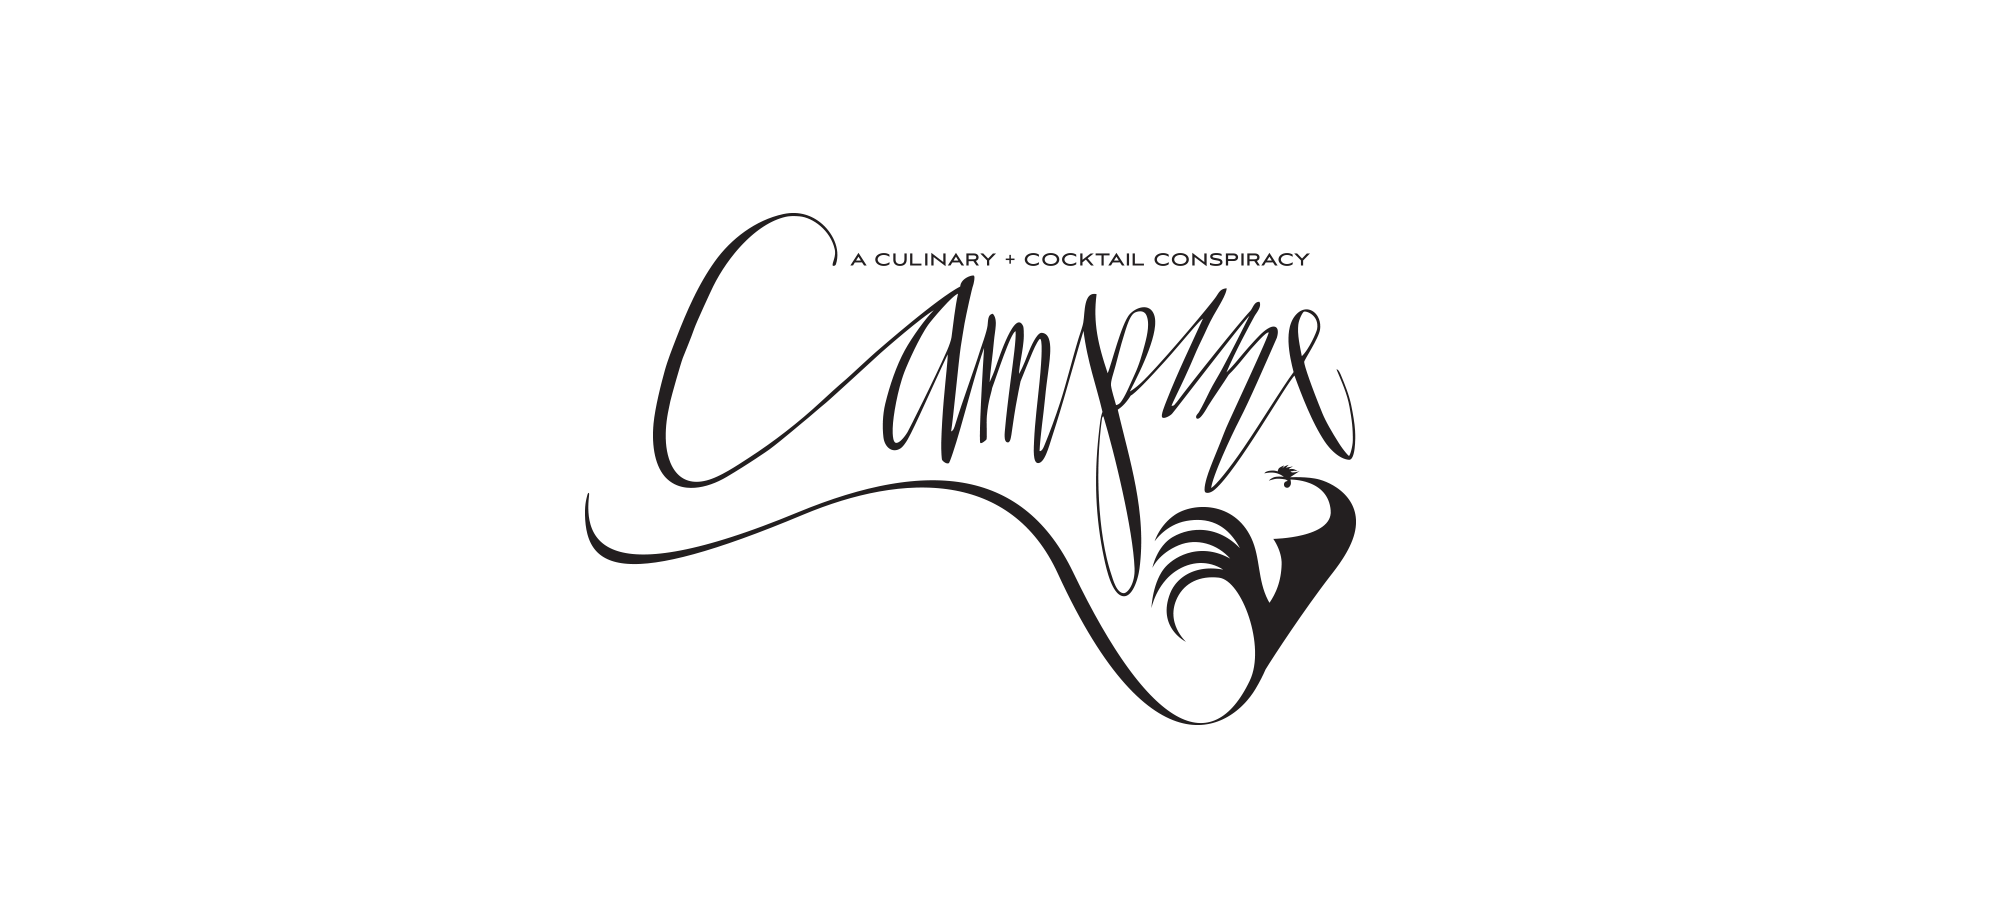 Campine catering